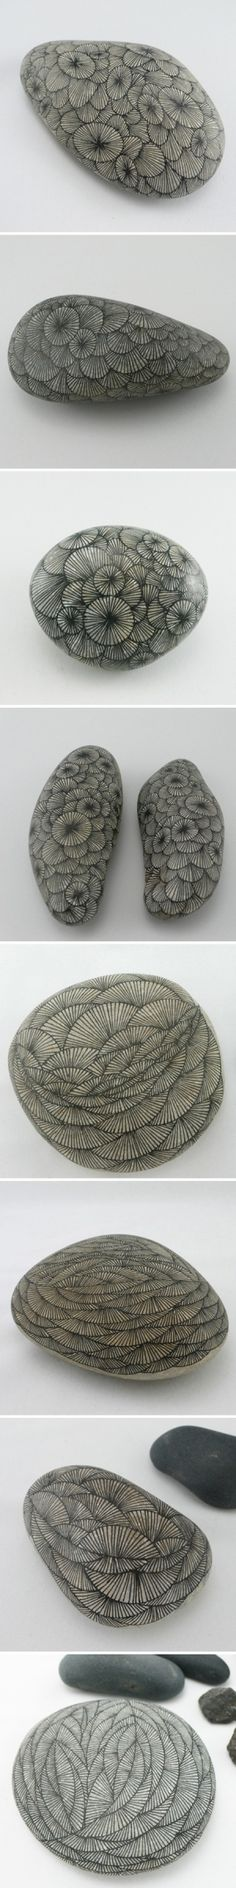 drawing on stones by Yoran Morvant, using drafting pen & ink by angelique